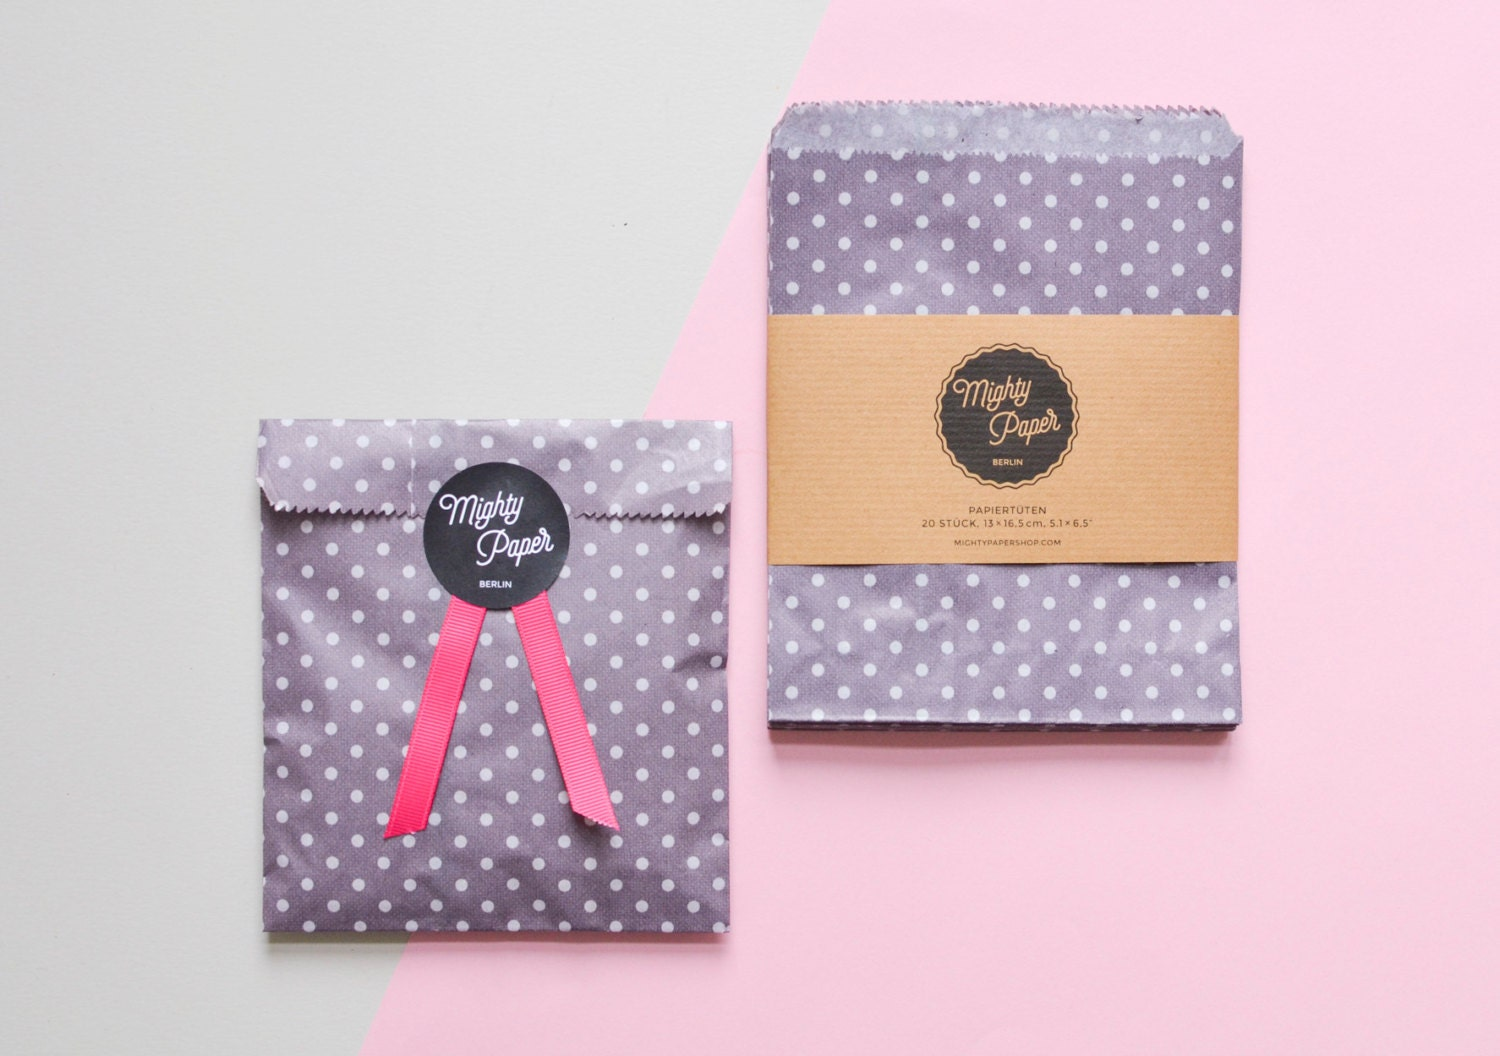 20 Polka Dots Paper Bags Favor Bags Wedding Favor Bags Candy